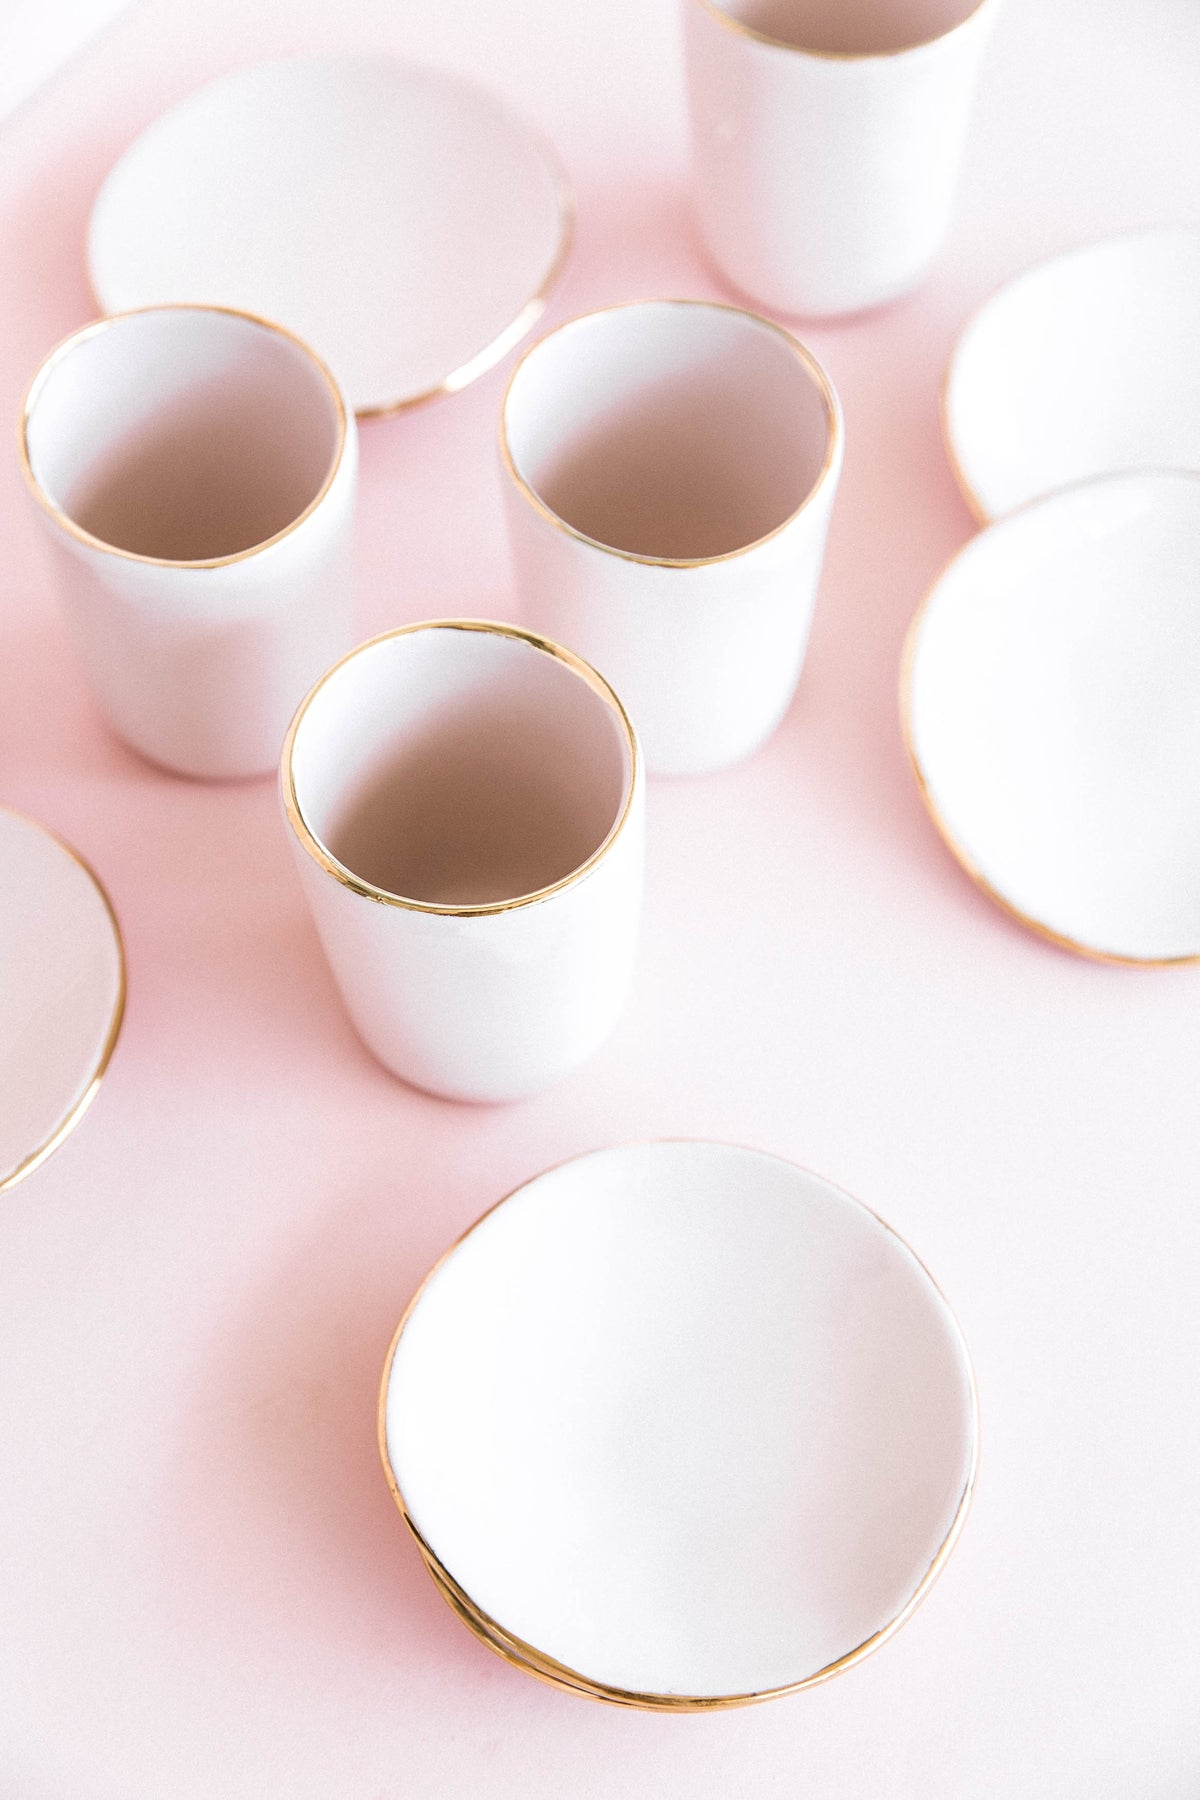 Everyday Snack Bowl in Pink by Klomp